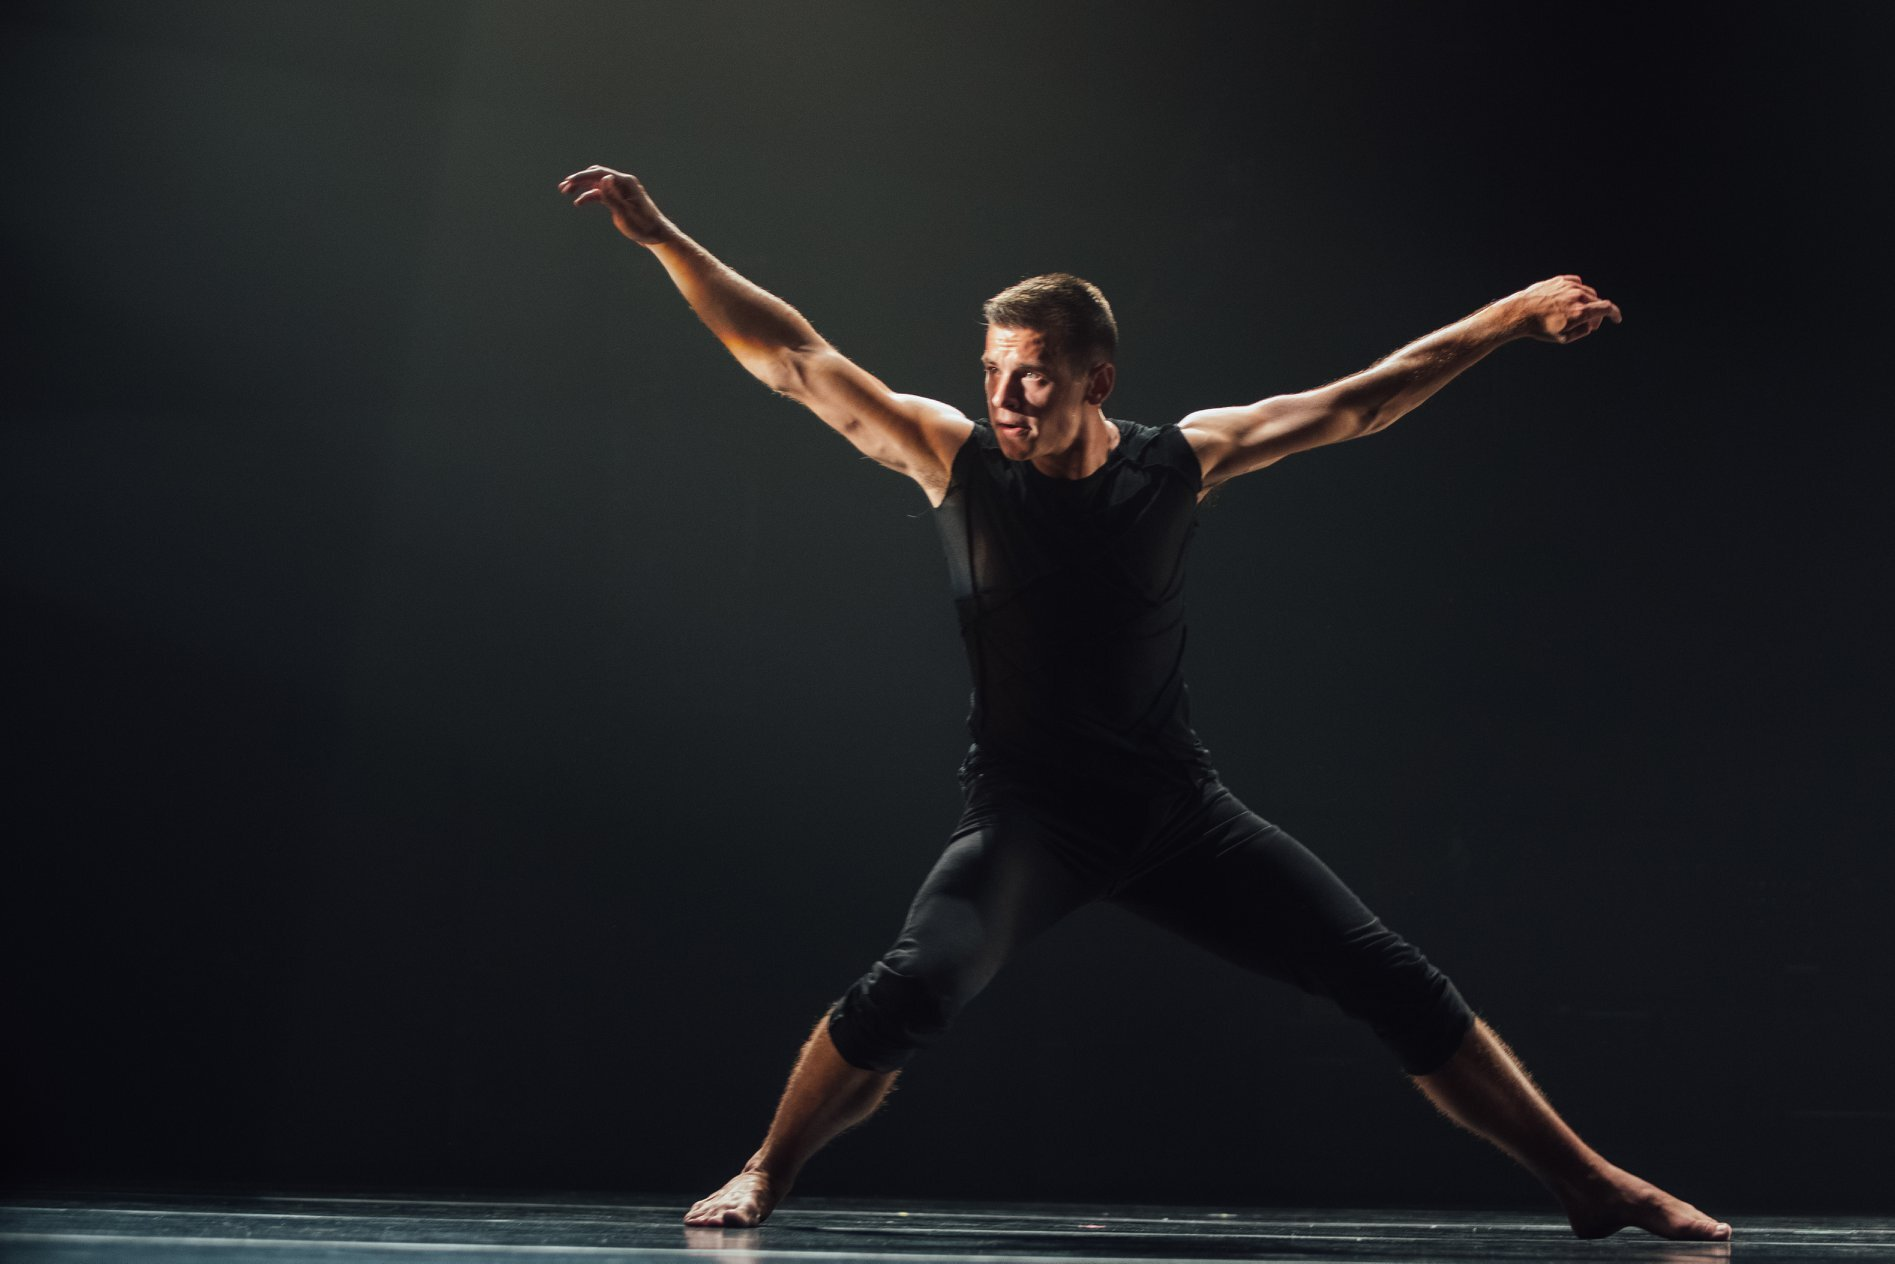 Devon Larcher, Dancer   Devon Larcher is a native of Pawtucket, Rhode Island where he graduated from the High School for the Performing and Visual Arts. Devon started his career traveling the world on the Royal Caribbean cruise line as a dancer and aerialist. He has been a member of the Bill Evans touring company as well as Urbanity Dance Company since 2014. Devon not only loves the stage but also to choreograph and create which he has had the opportunity to do both in the states and internationally. Devon joined Koresh Dance Company in 2018.